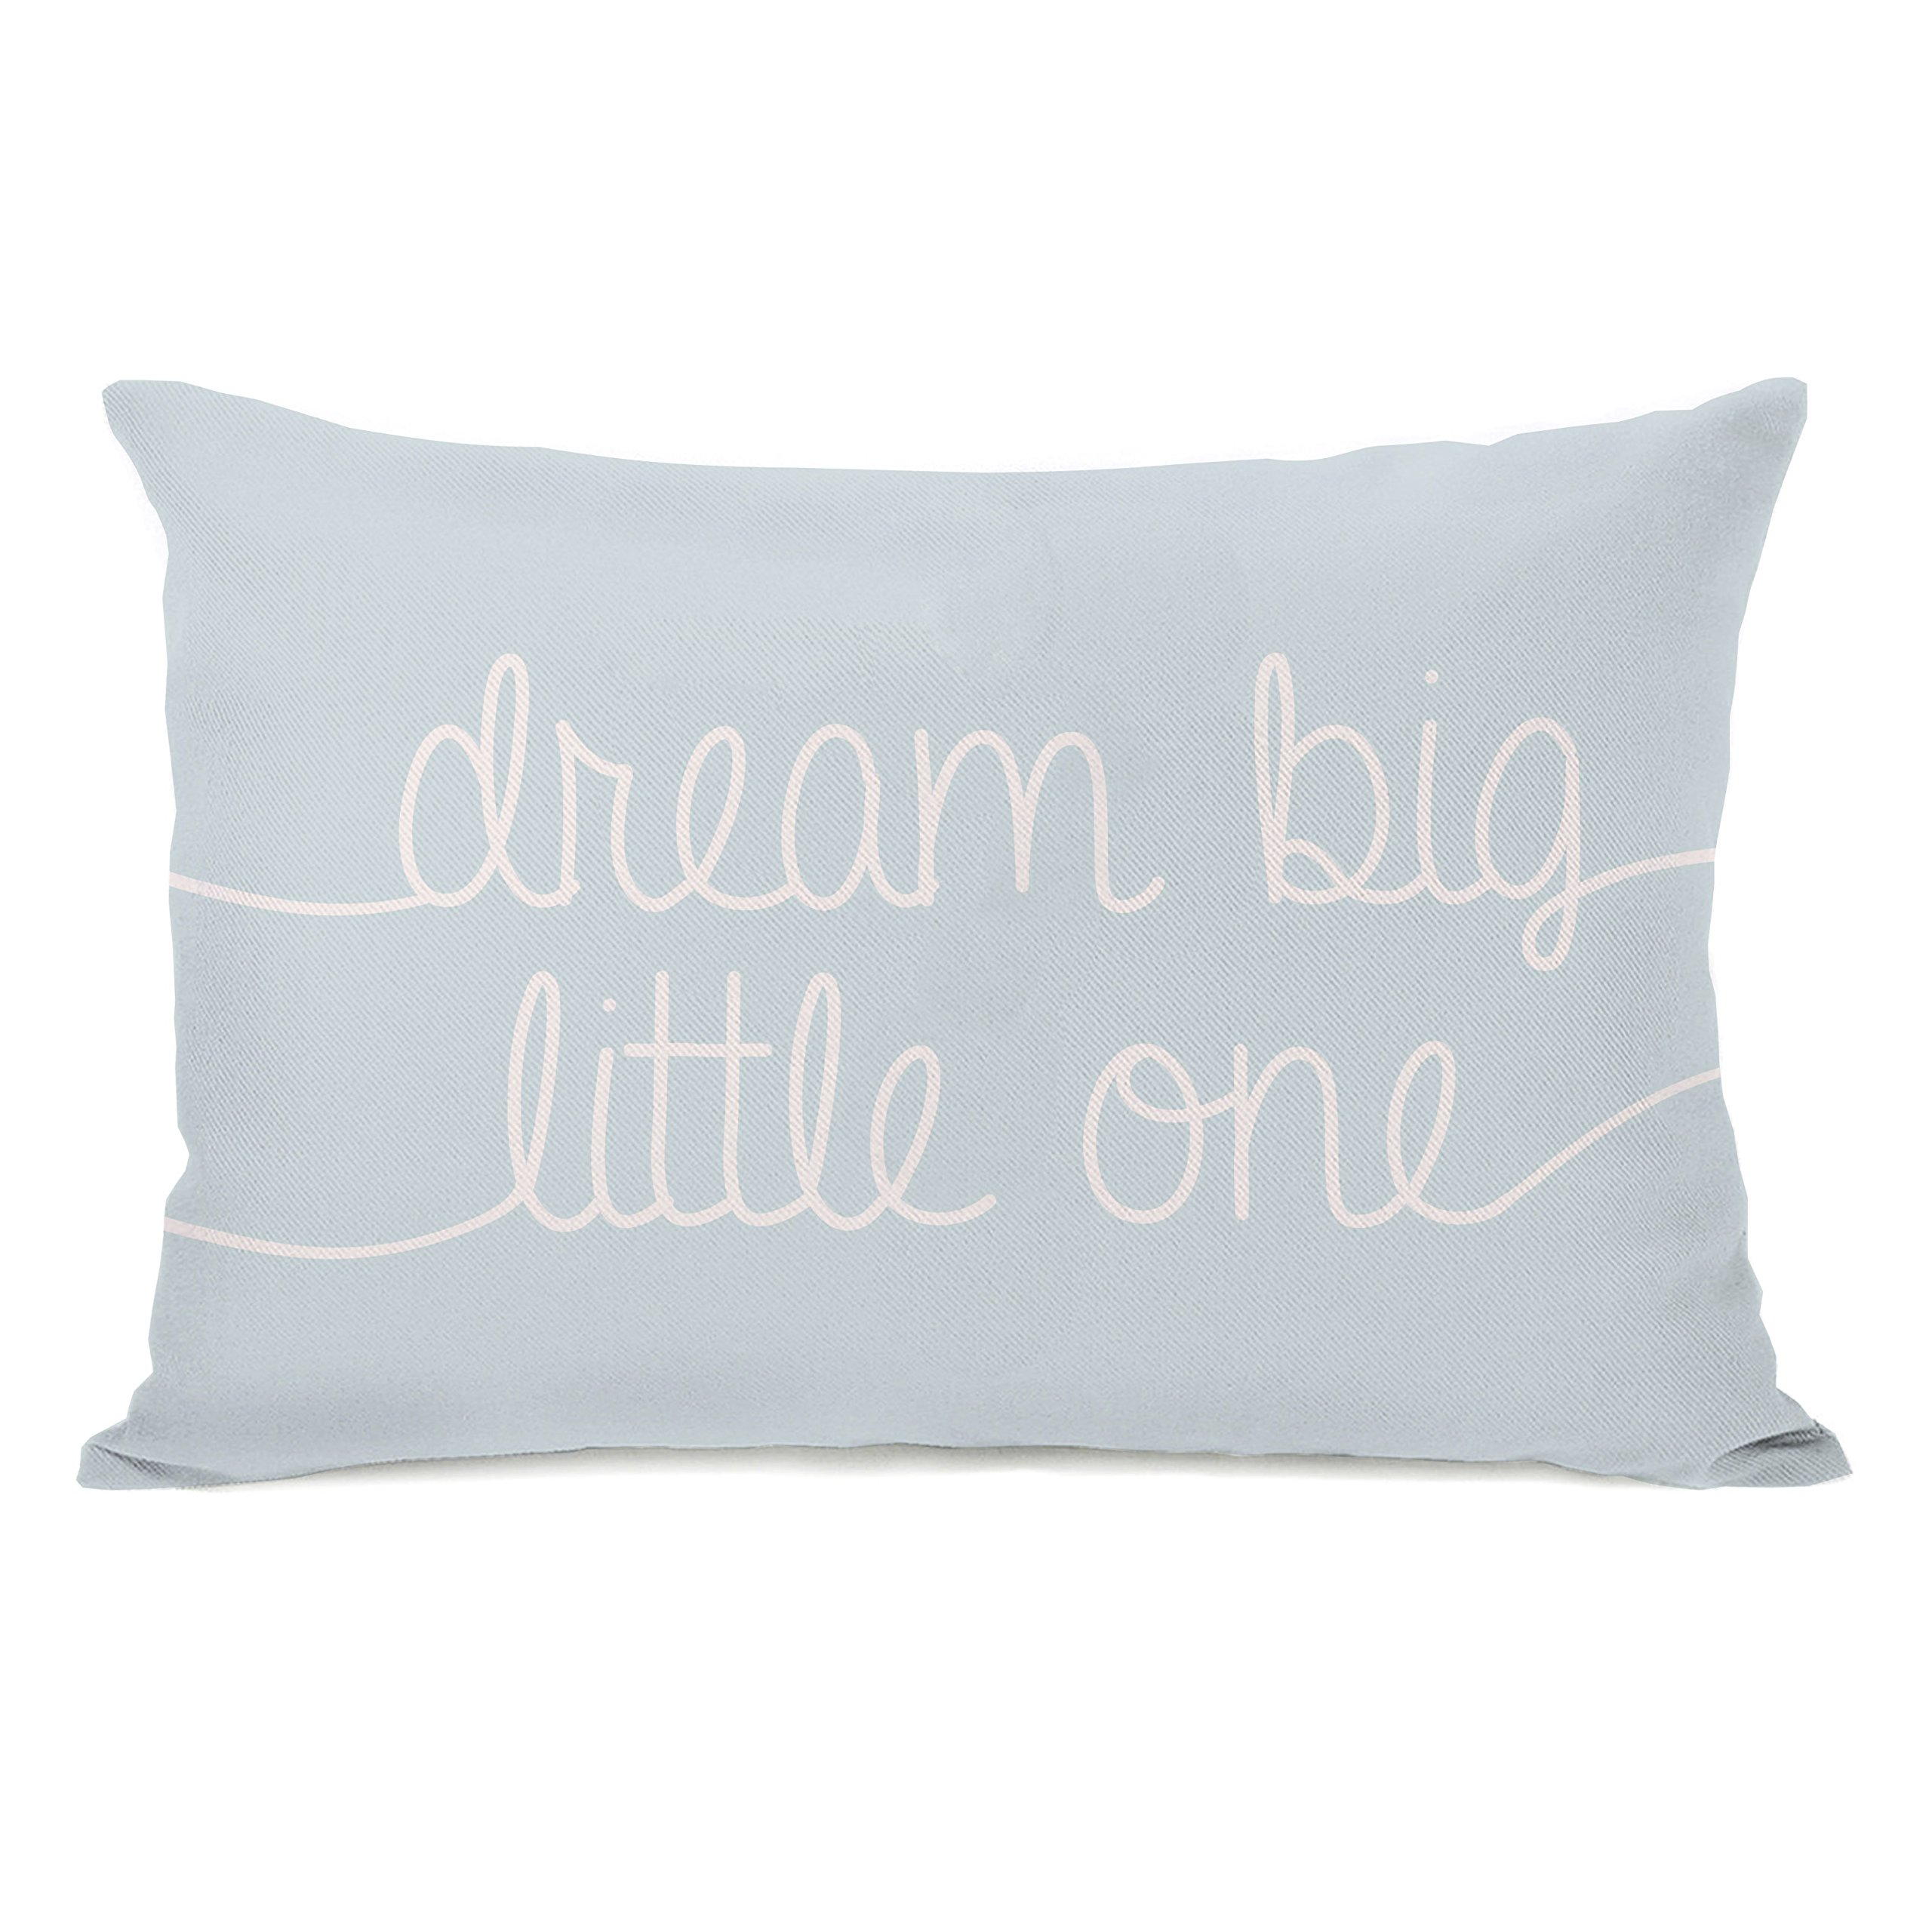 One Bella Casa Dream Big Little One Throw Pillow Cover by OBC, 14''x 20'', Spa Blue